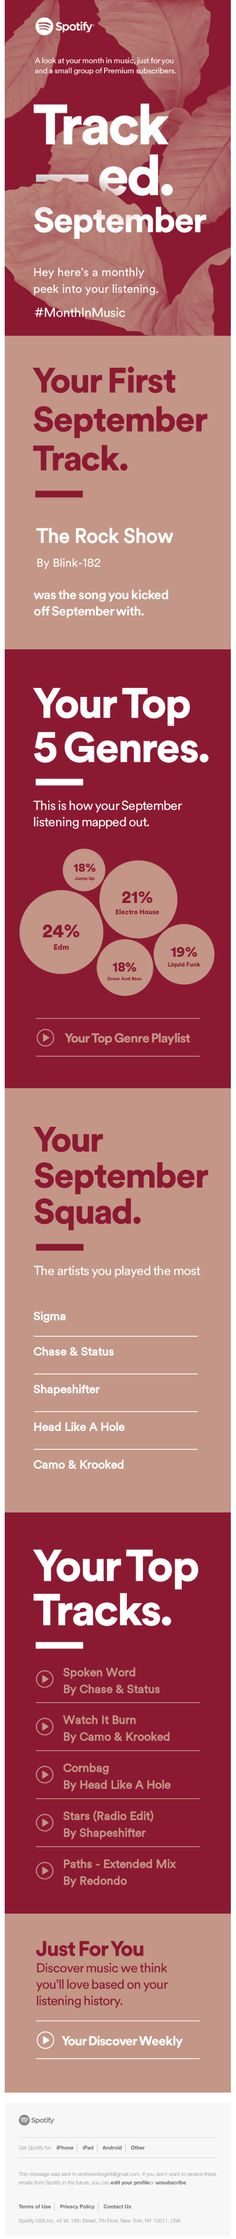 Love the personalized data visualization in this Spotify email